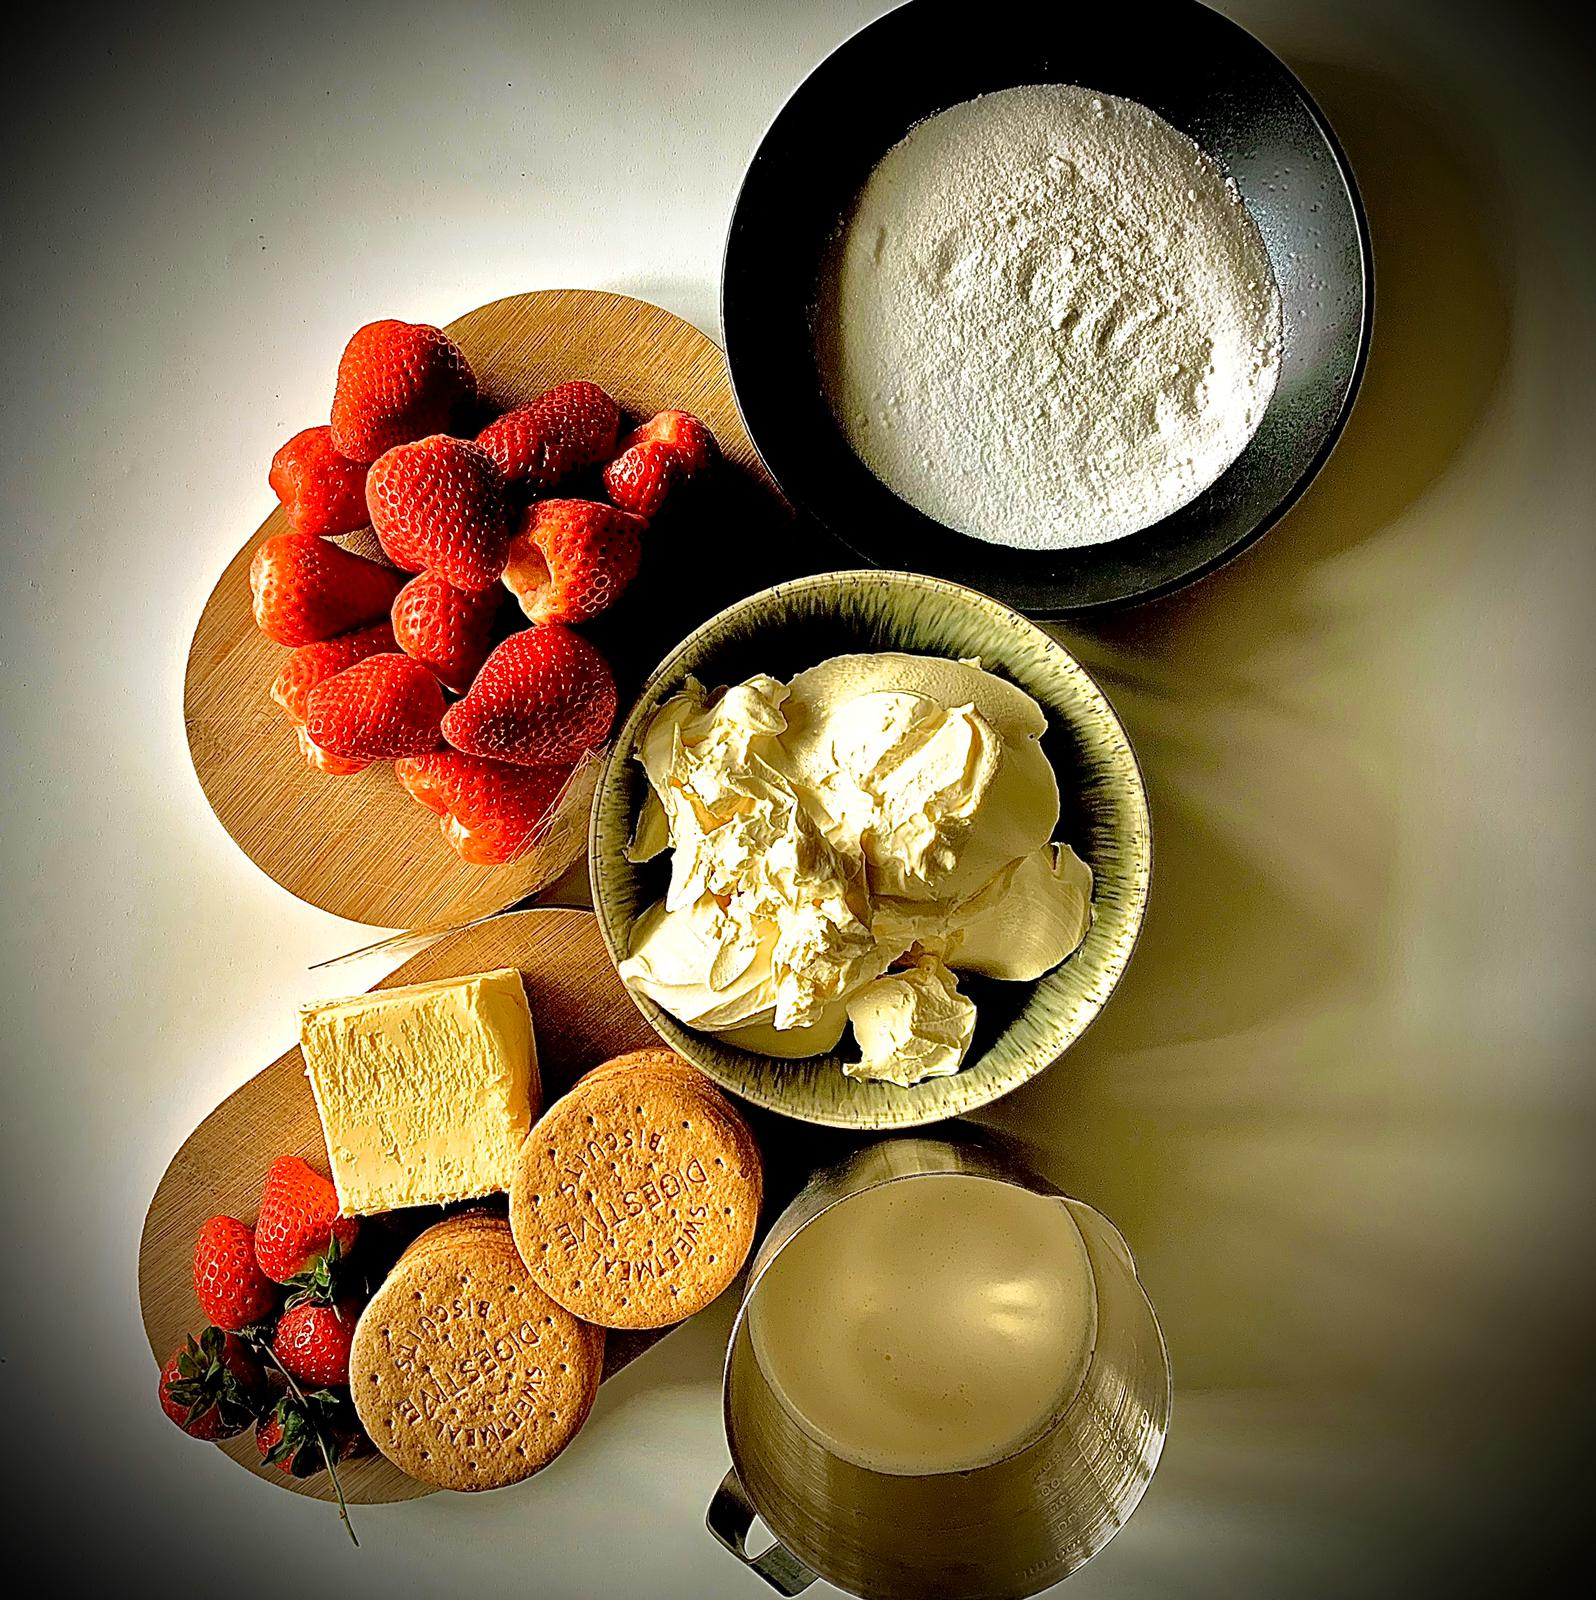 Aerial picture of strawberry cheesecake ingredients - strawberries, cream, butter, sugar and biscuits